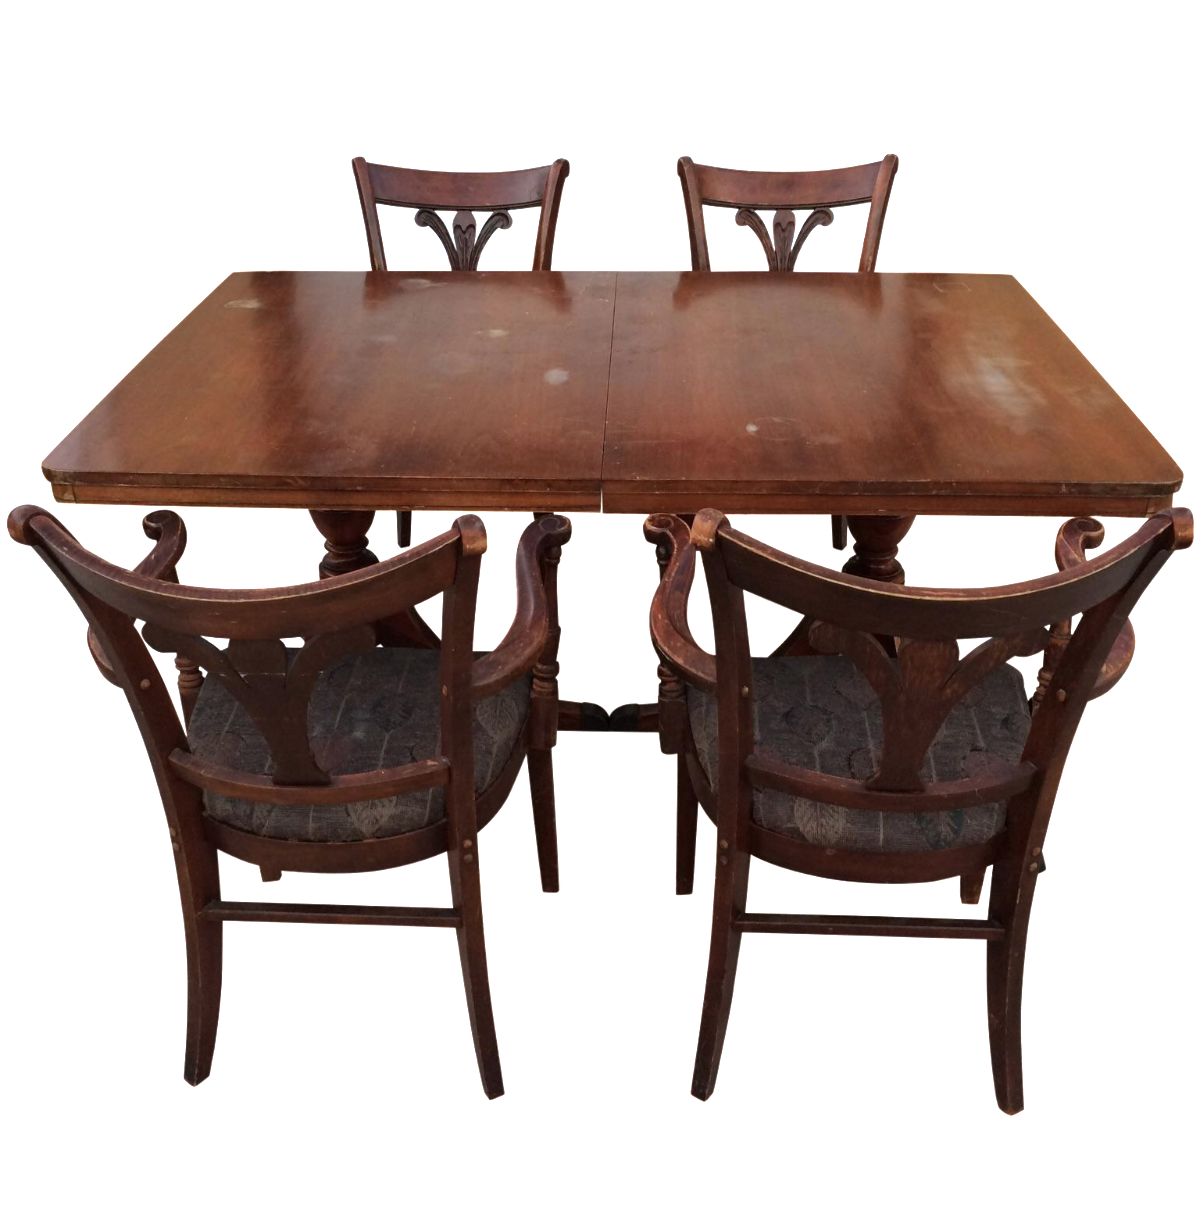 Tell City Mahogany Chairs Amp Dining Table S 5 Chairish